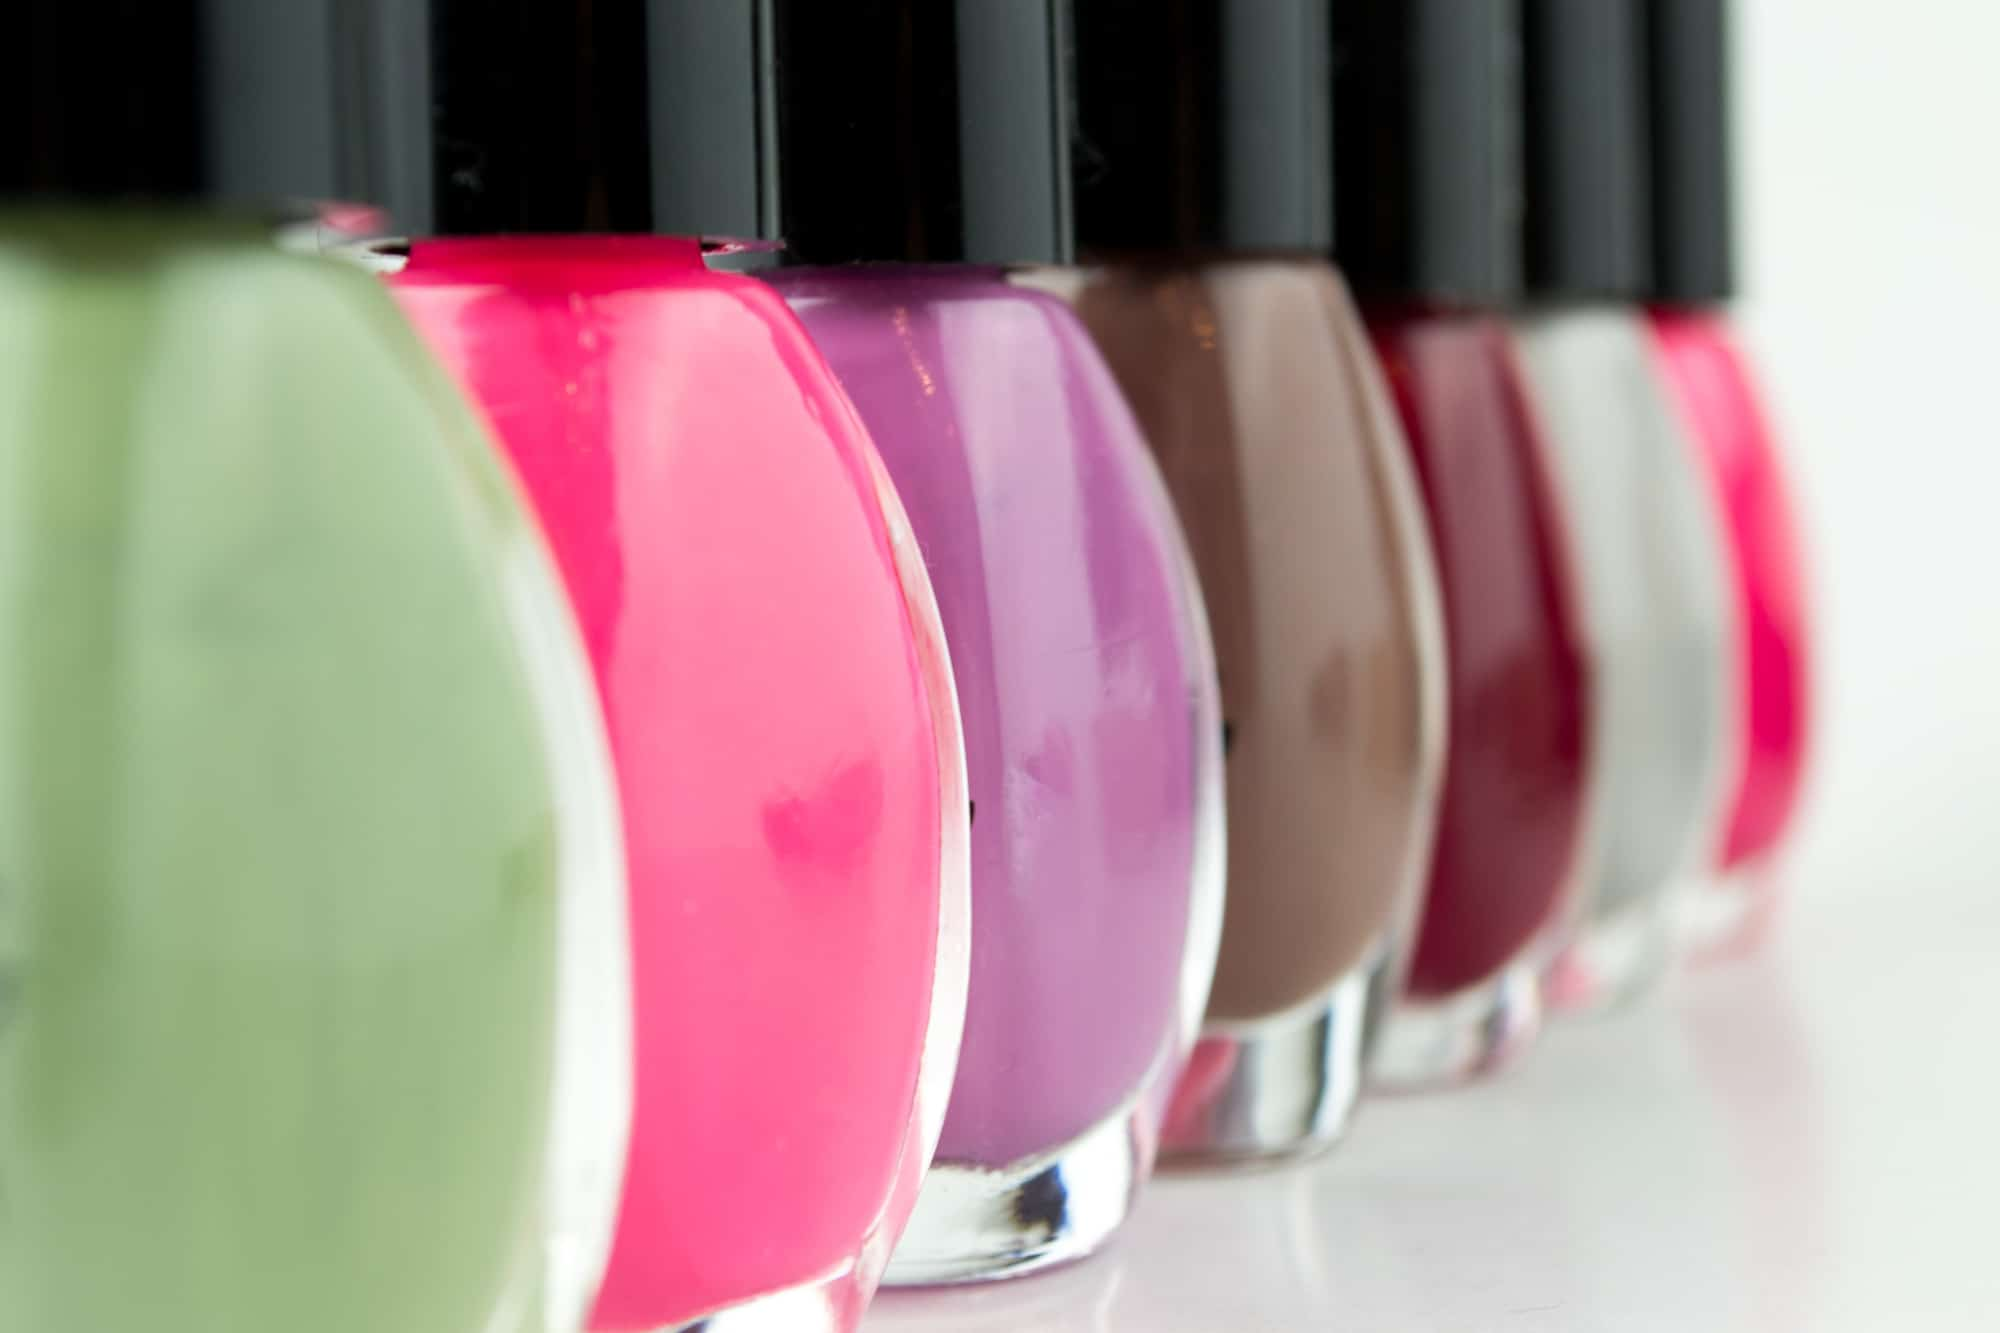 Sideview of 6 bottles of 9 free non-toxic nail polish bottles